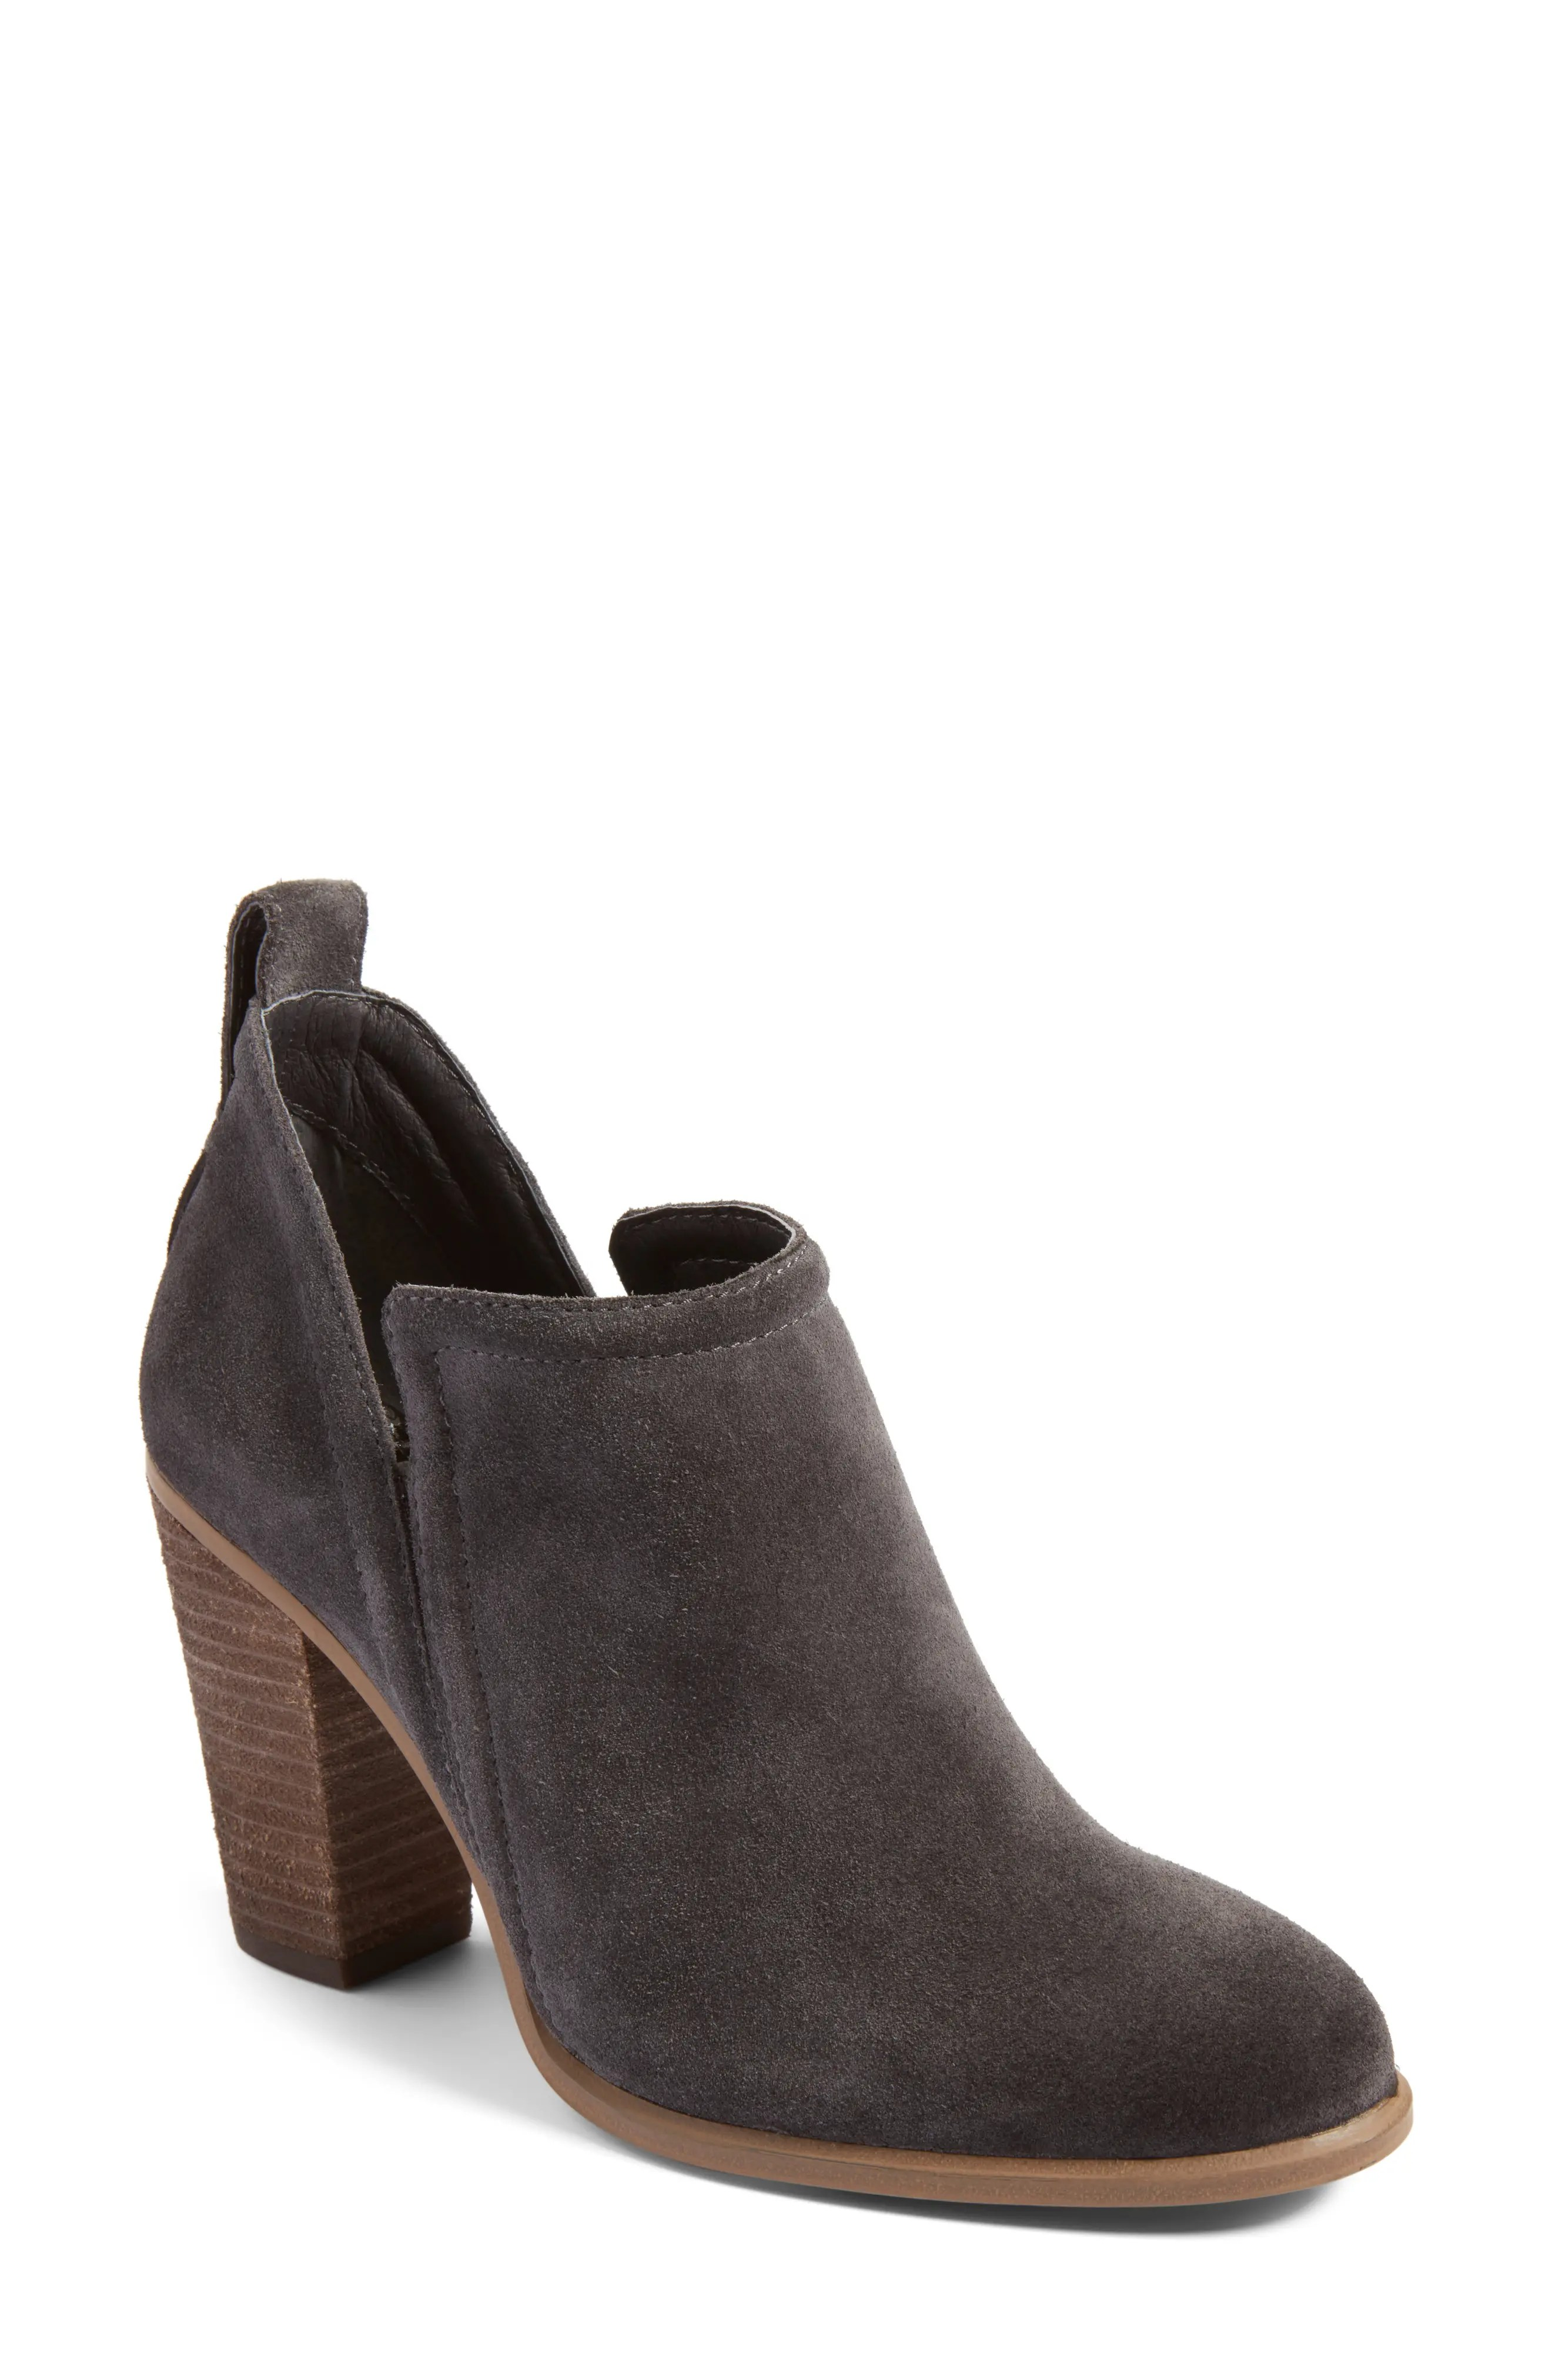 Main Image - Vince Camuto Francia Bootie (Women)